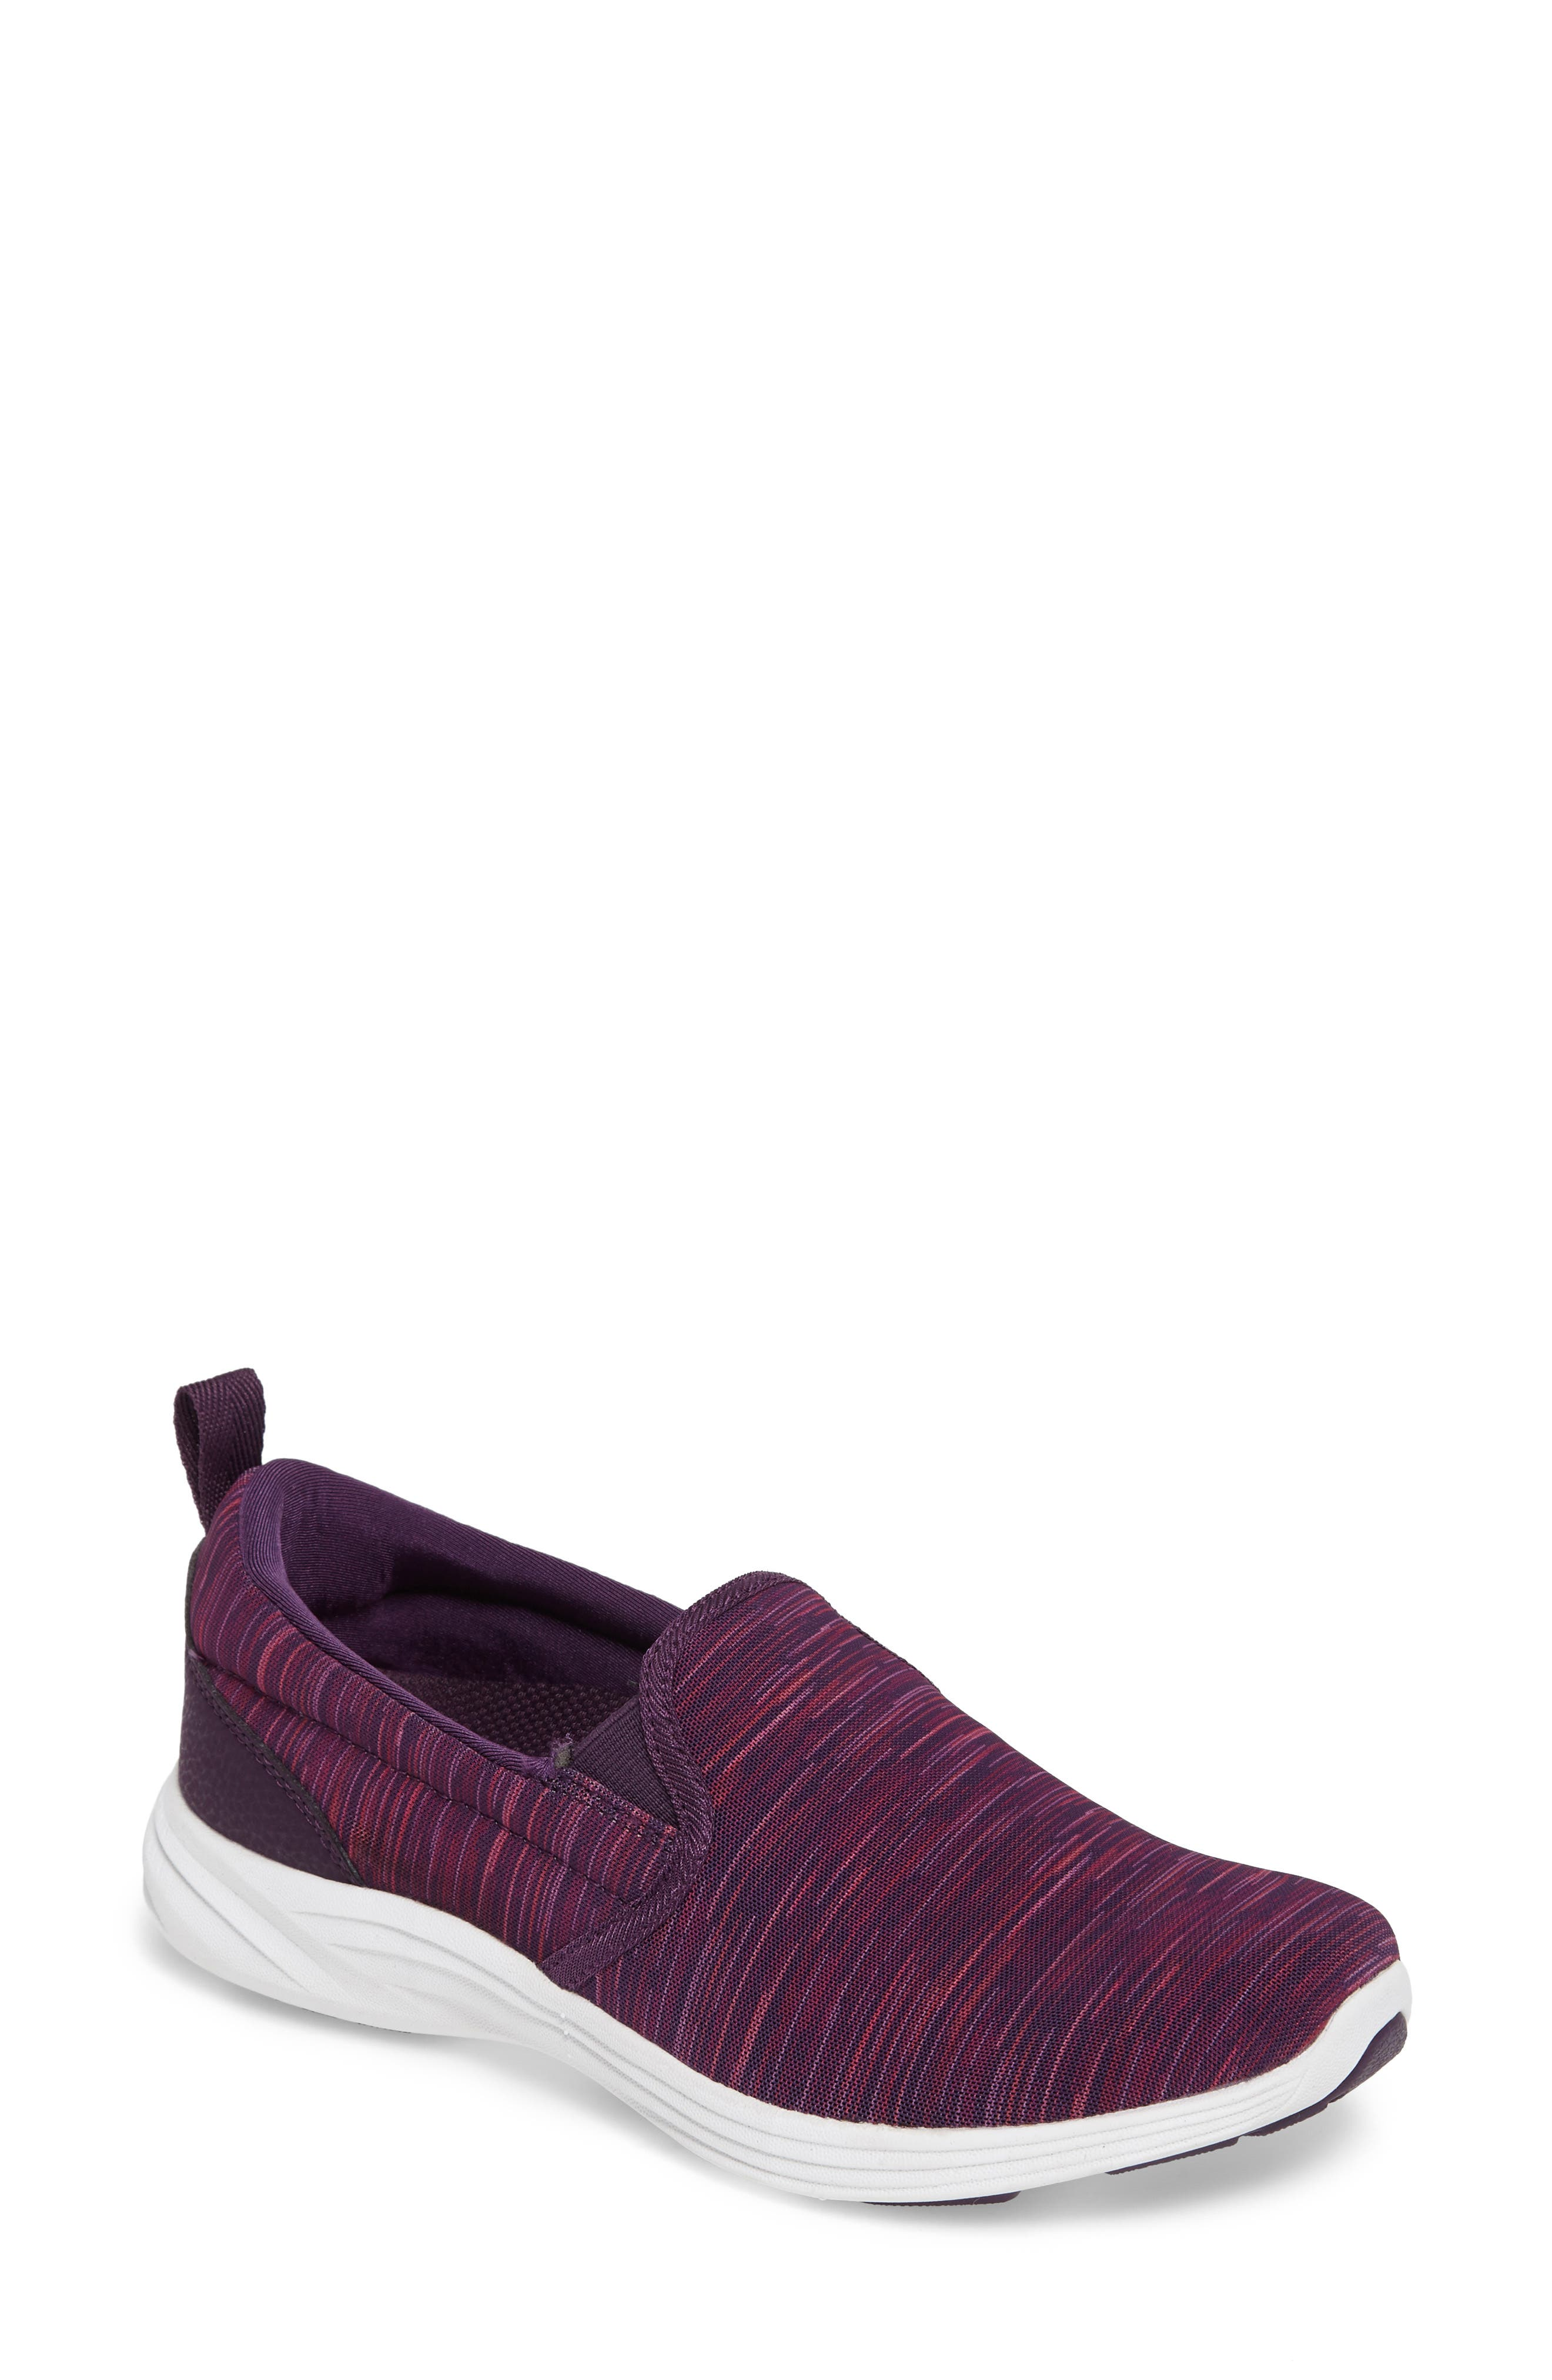 'Kea' Slip-On Sneaker,                         Main,                         color, 552